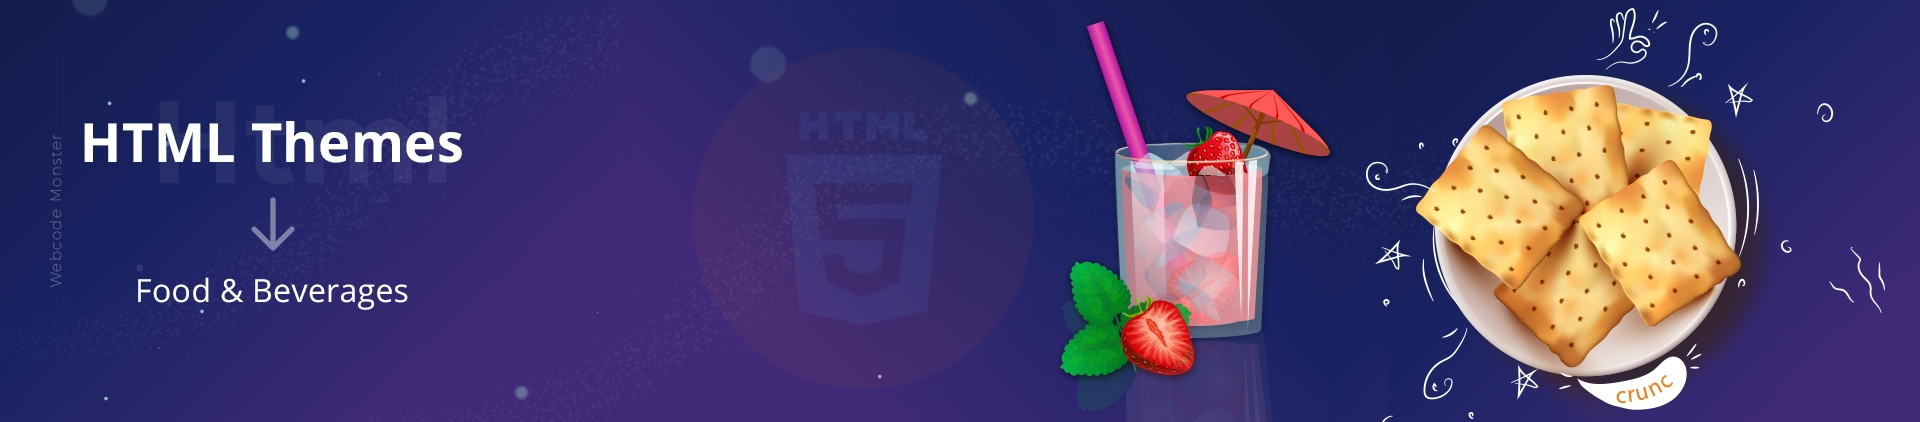 Food & Beverages HTML Website Templates - Webcodemonster